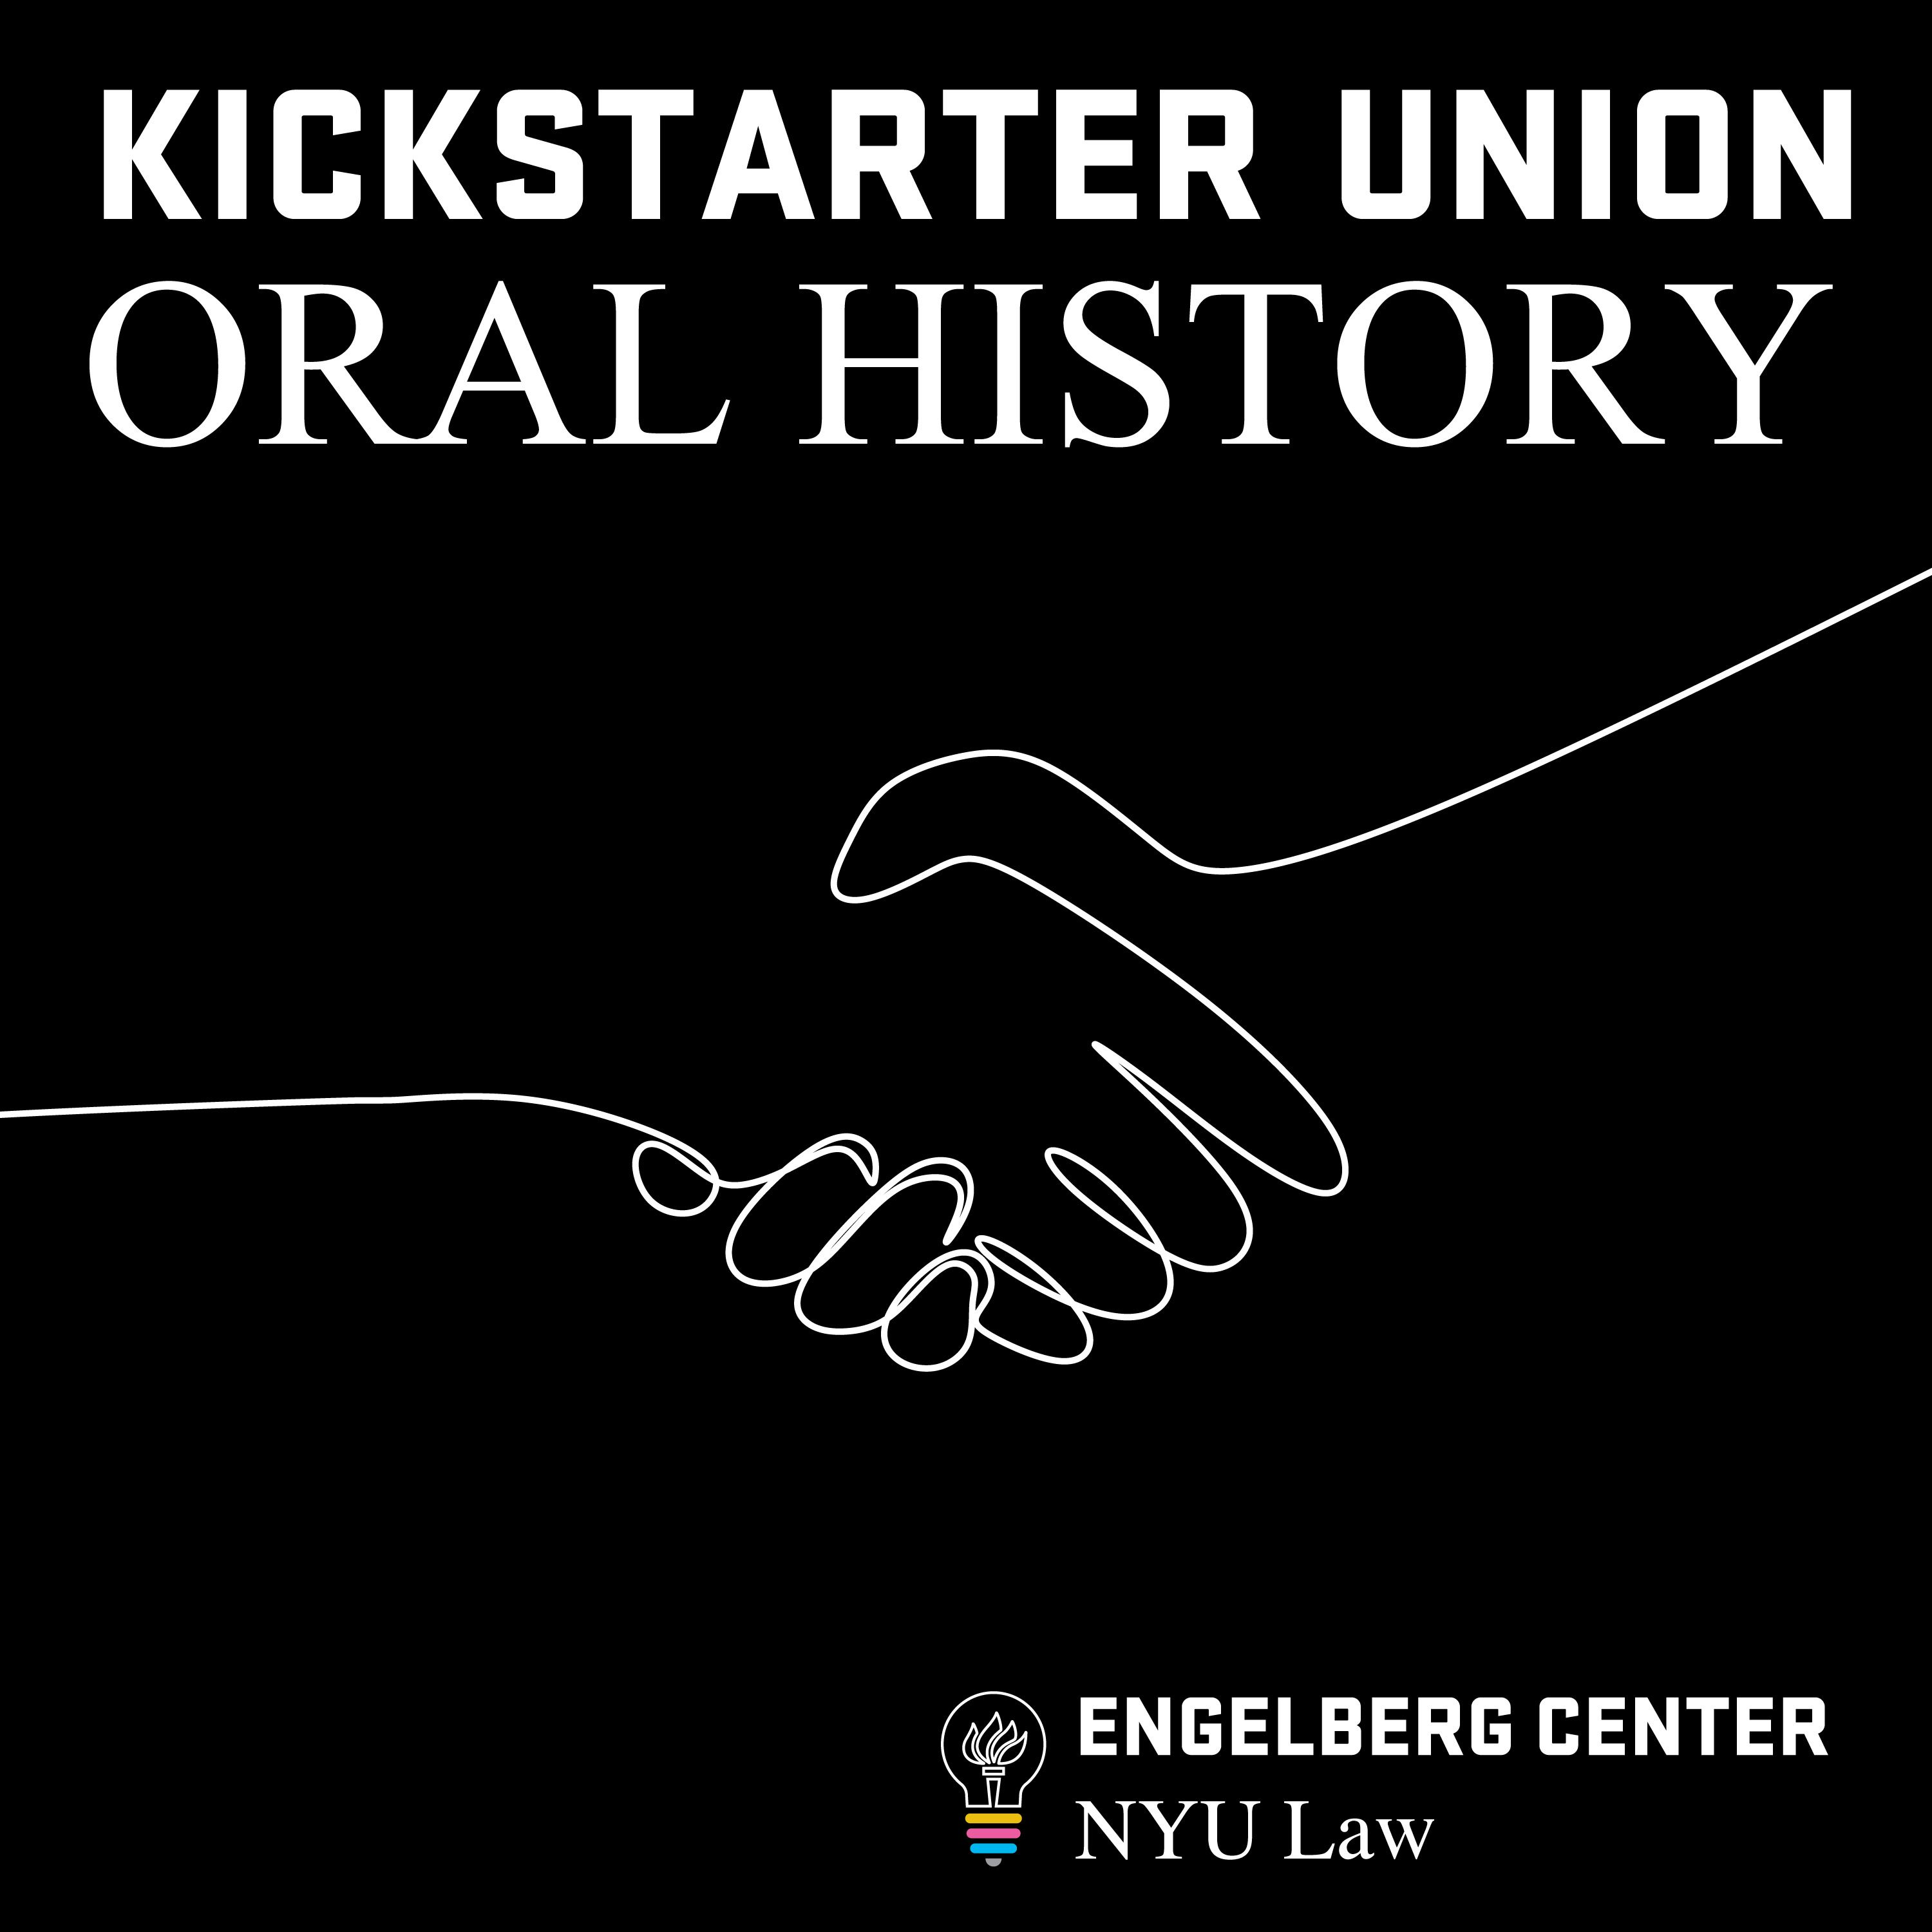 Introducing an Oral History of the Kickstarter Union